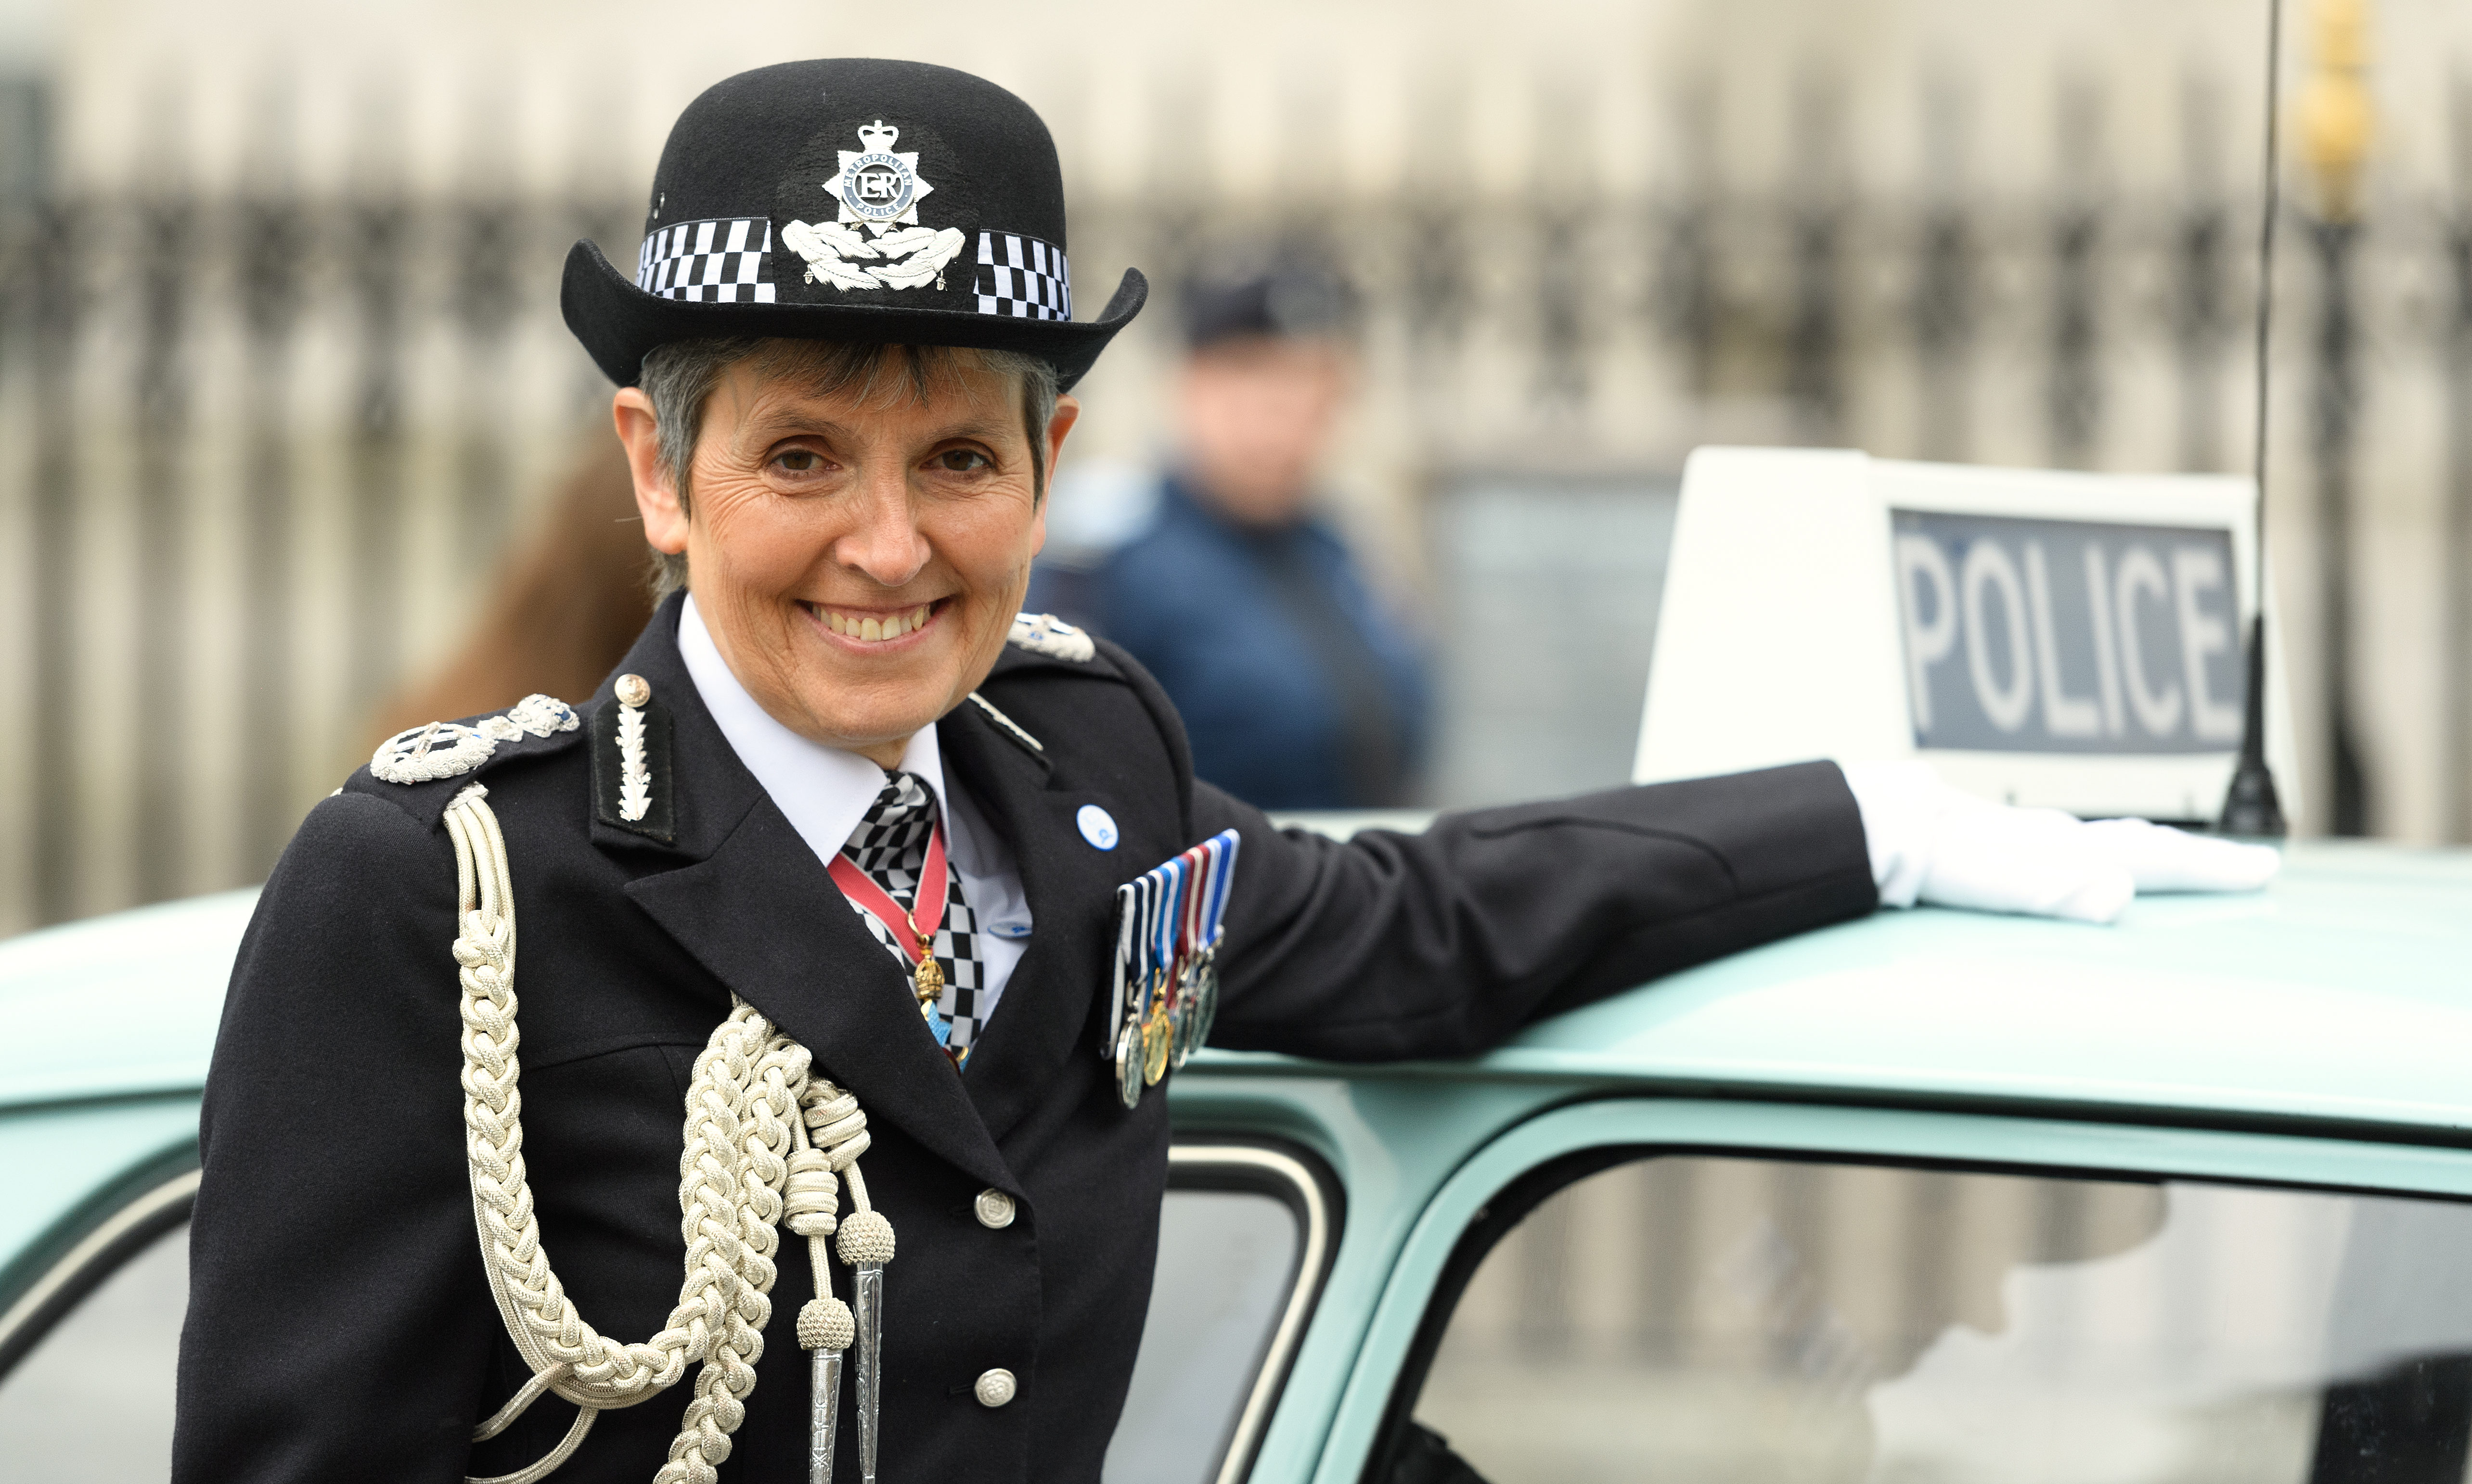 Commissioner of the Metropolitan Police Service Cressida Dick poses with an Austin 1100 police car  at Westminster Abbey.